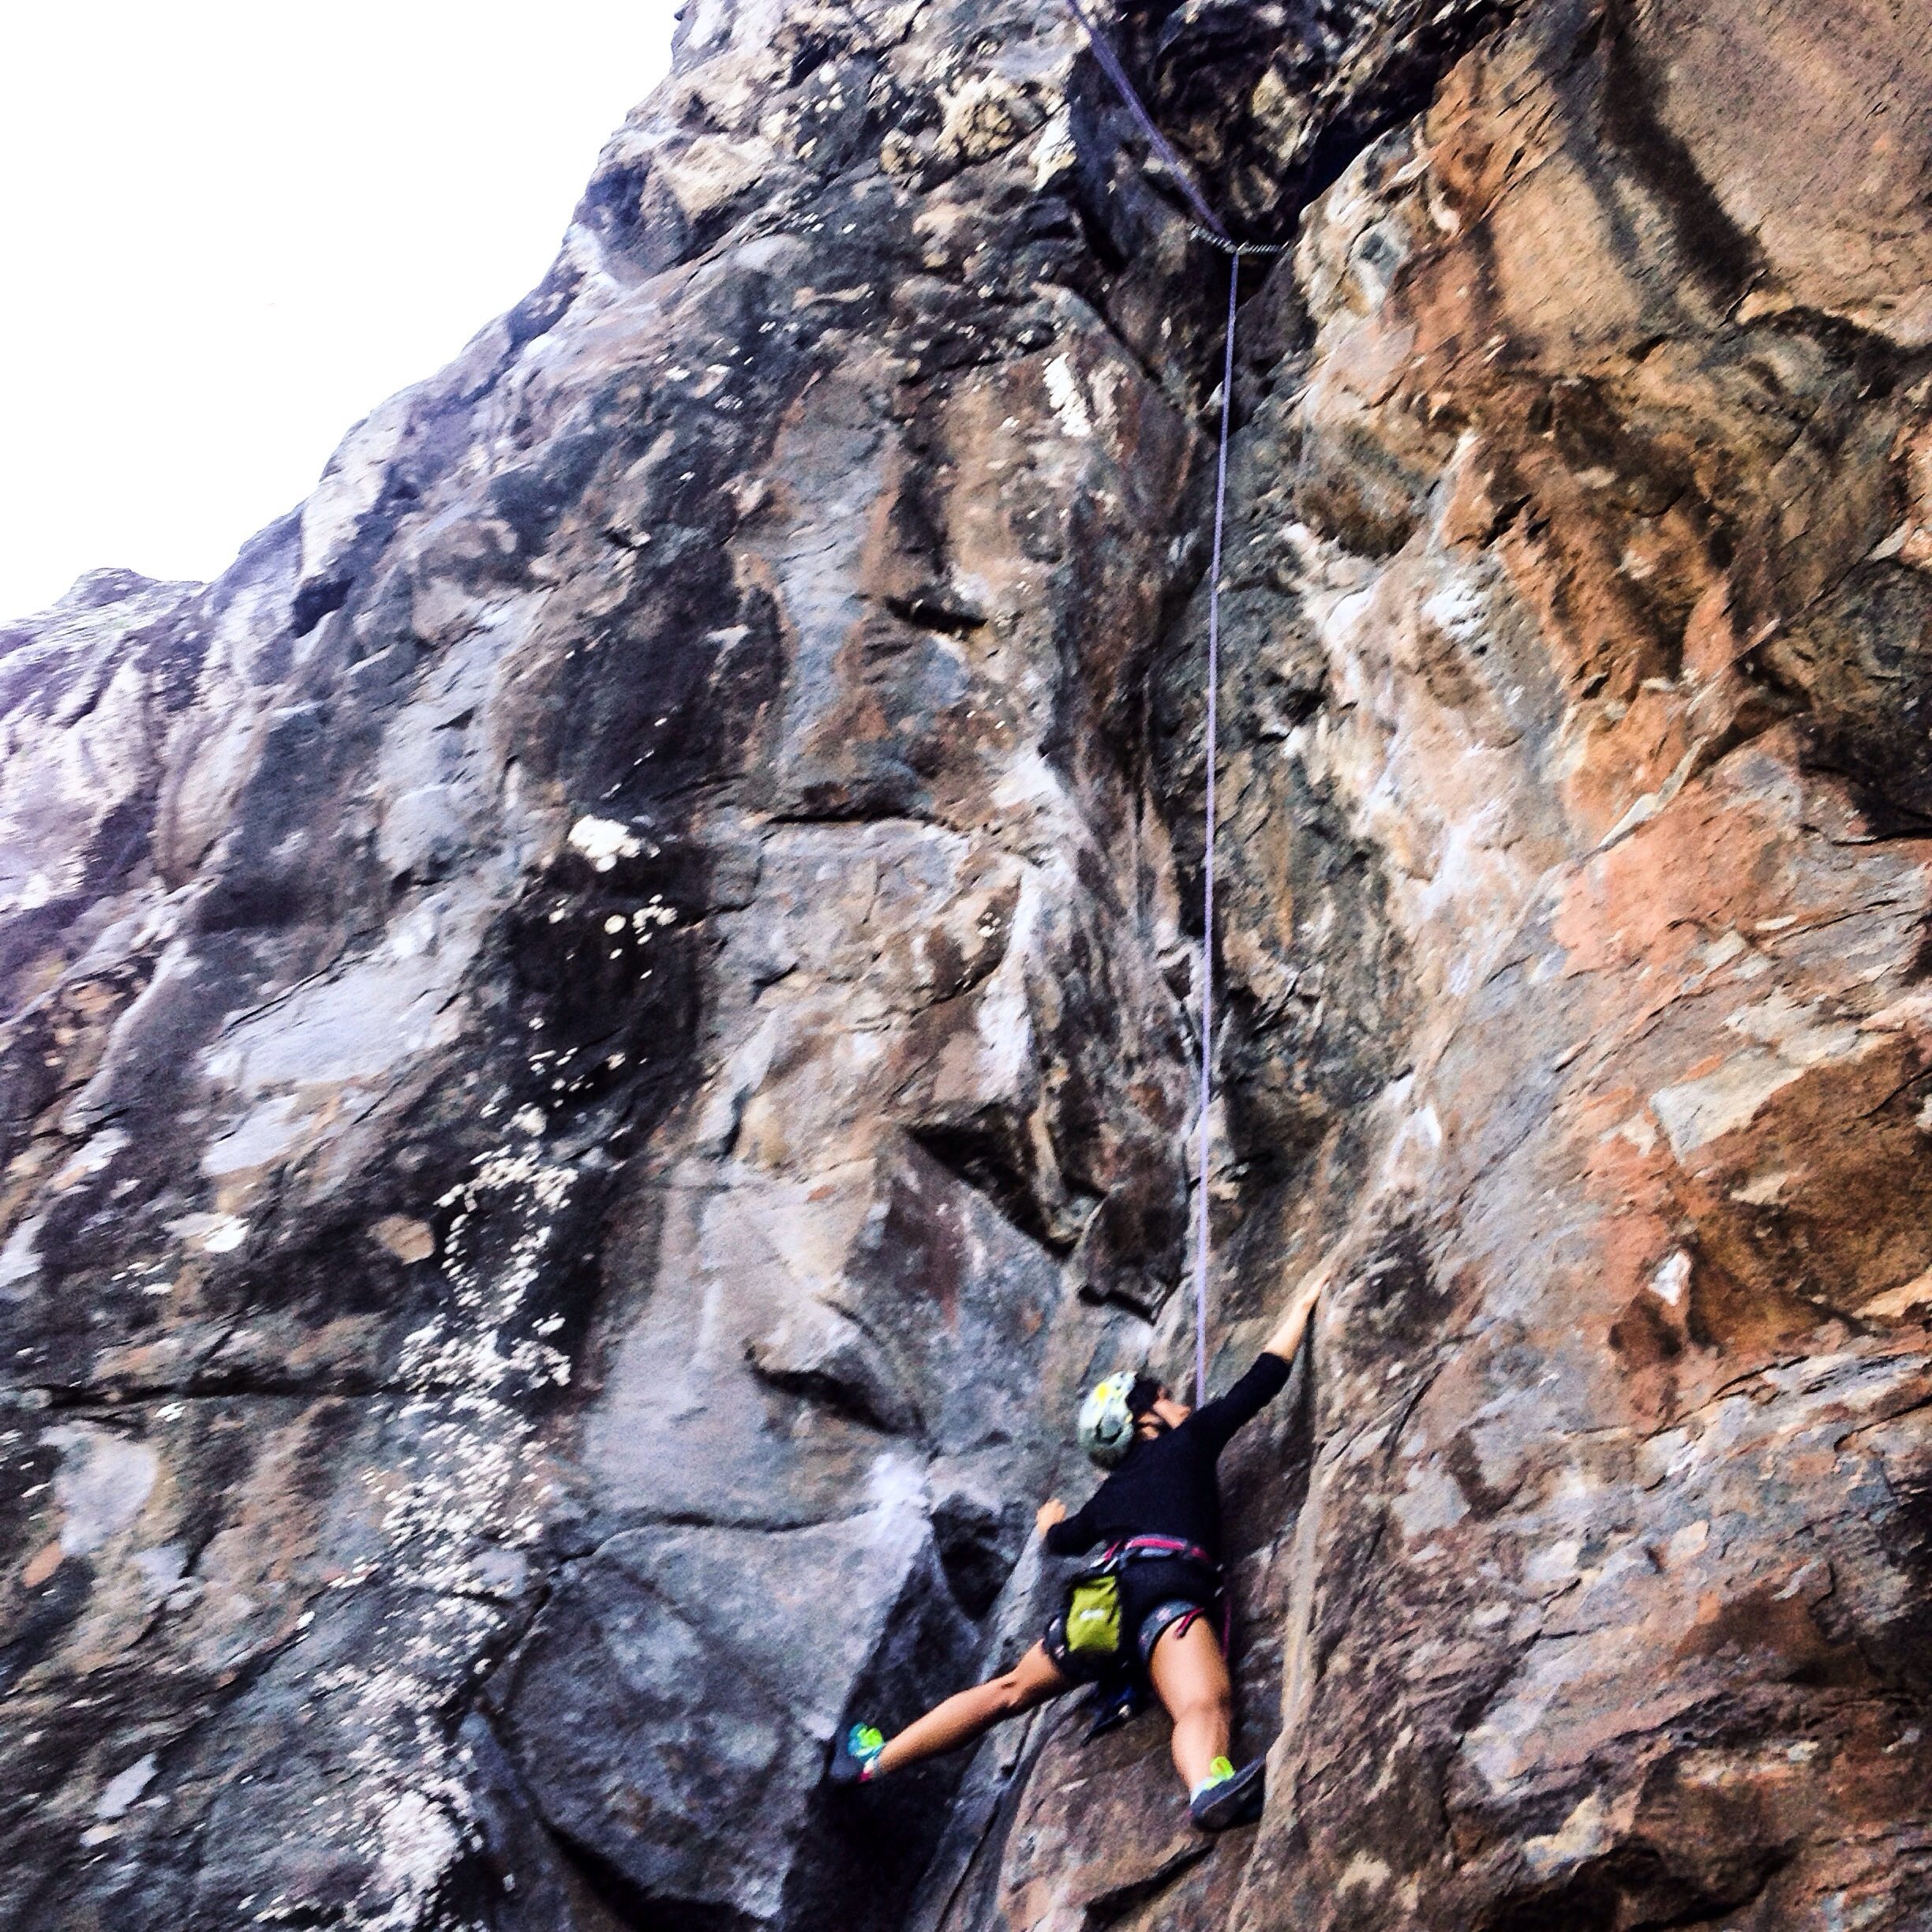 What an amazing climb!! One of the most challenging climbs I've everexperienced! Pure magic!